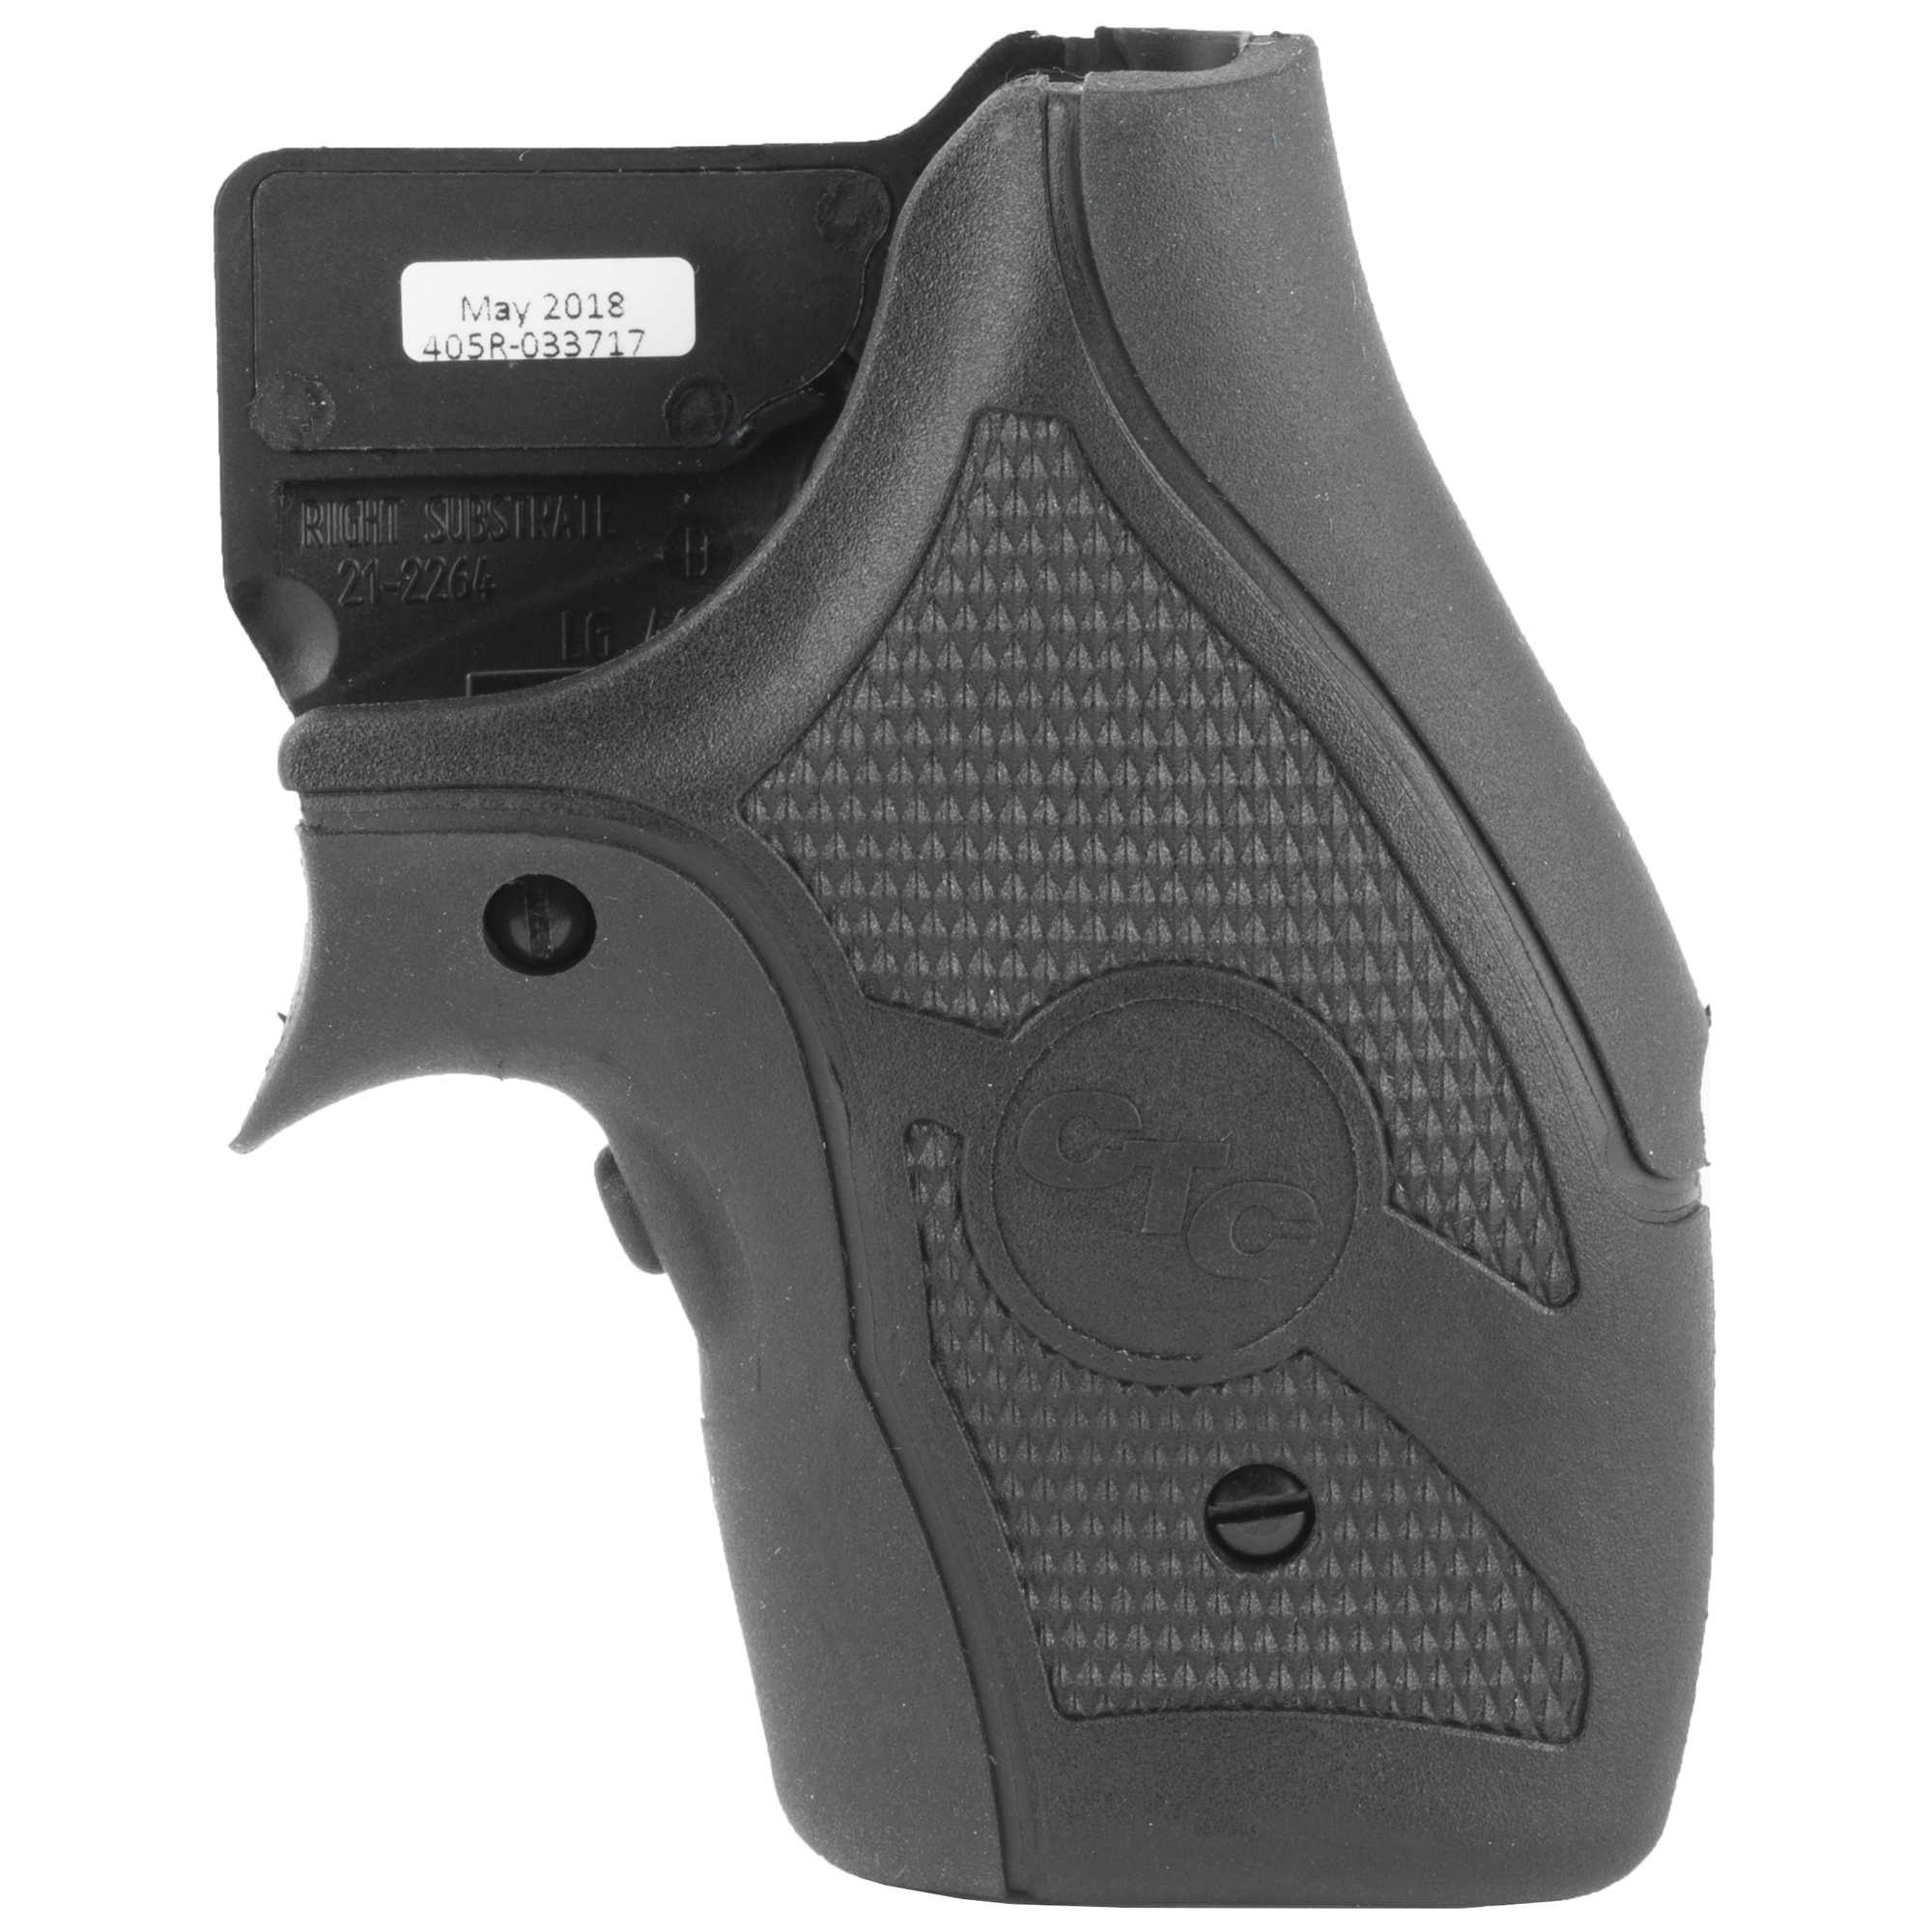 """The LG-405 laser sight is the latest design in Lasergrips(R) for the wildly popular Smith & Wesson J-Frame revolver line. Featuring a front activated laser that is engaged instinctively when the revolver is held in a natural shooting grip"""" the LG-405 laser sight is manufactured with a rubber overmold material over a polymer base. In addition to the enhanced sighting provided by Crimson Trace(R) Lasergrips"""" the LG-405 also features an innovative air pocket on top of the backstrap that effectively reduces felt recoil up to 30%. The LG-405 on a J-Frame is ideal for deep concealment."""